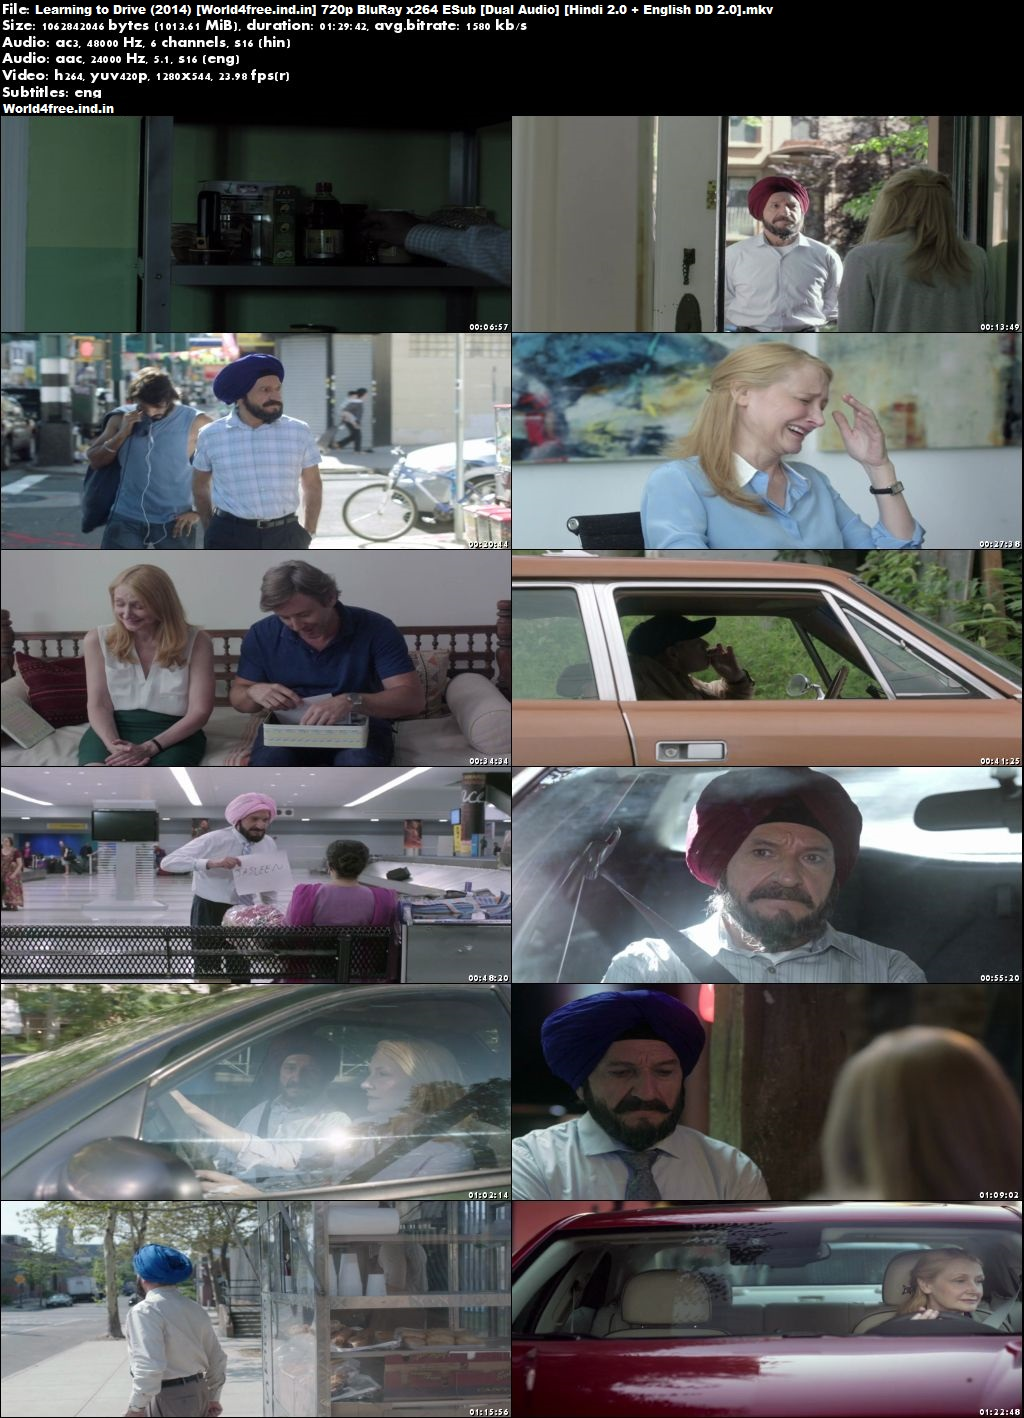 Learning to Drive 2014 world4free.ind.in Dual Audio BRRip 720p Hindi English